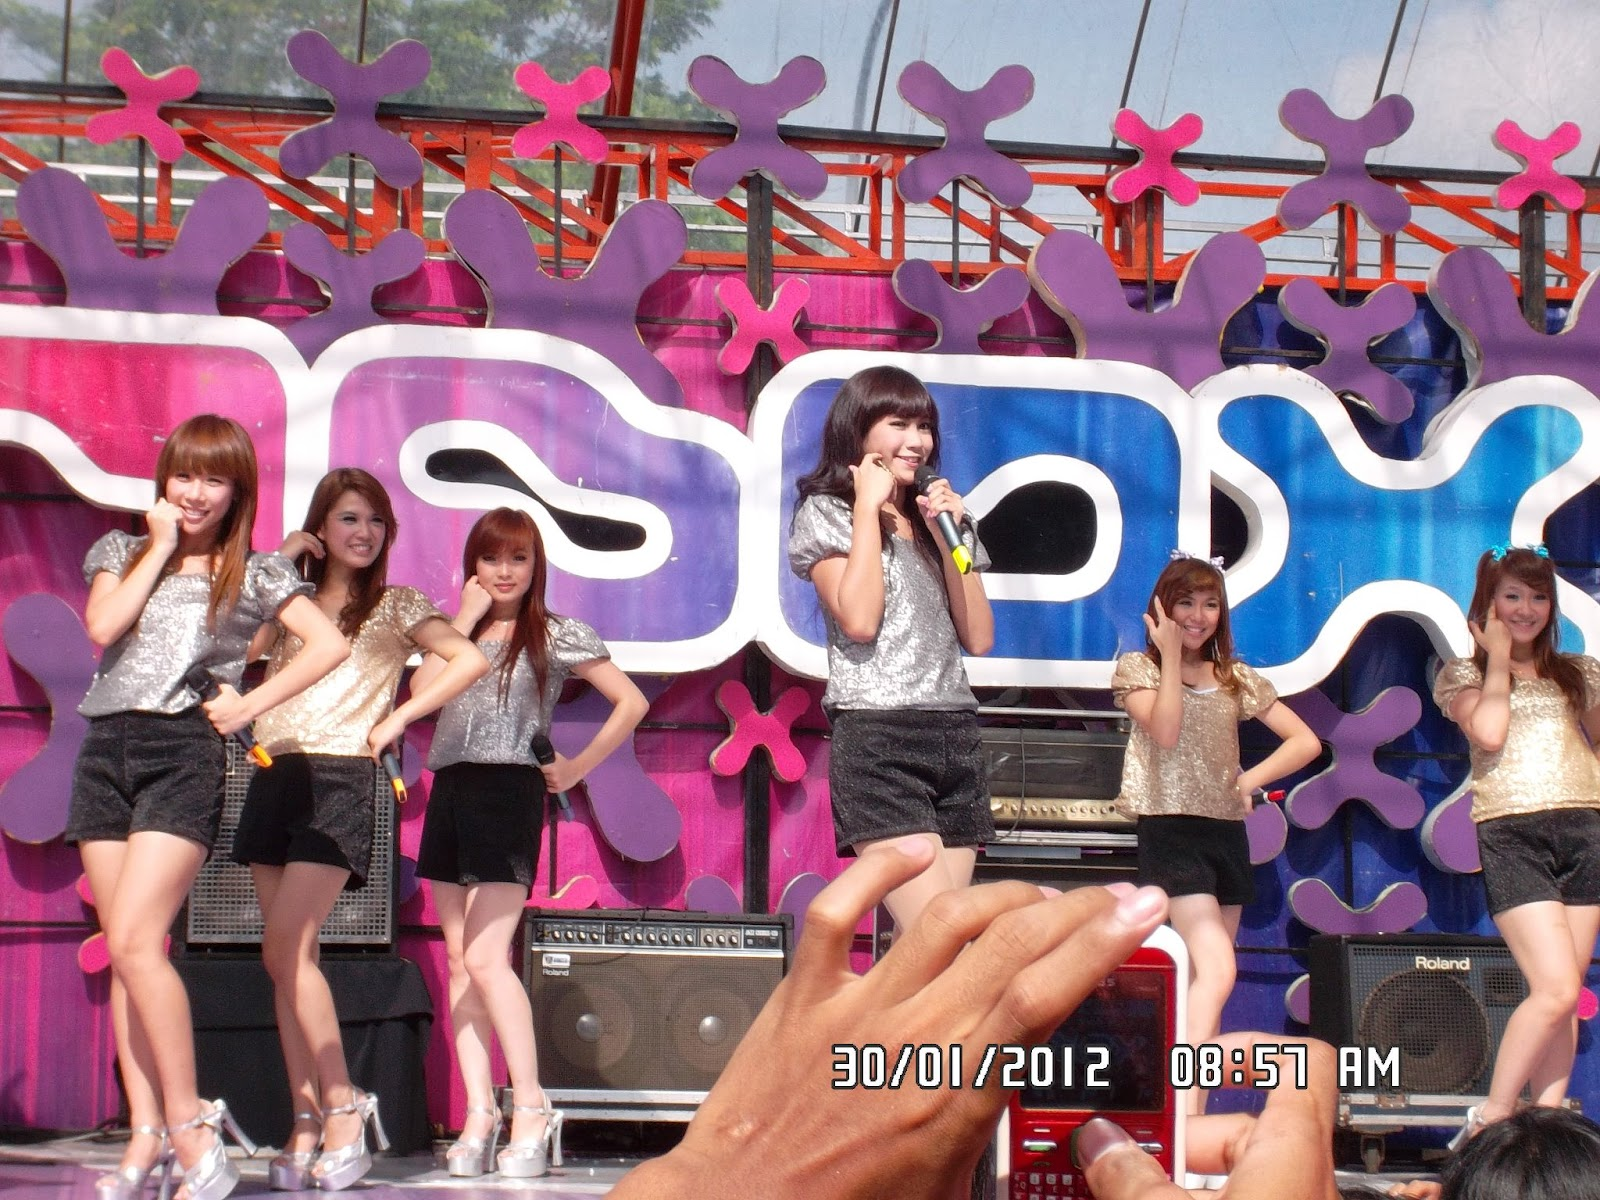 FELLYCIOUS BALI About Cherry Belle